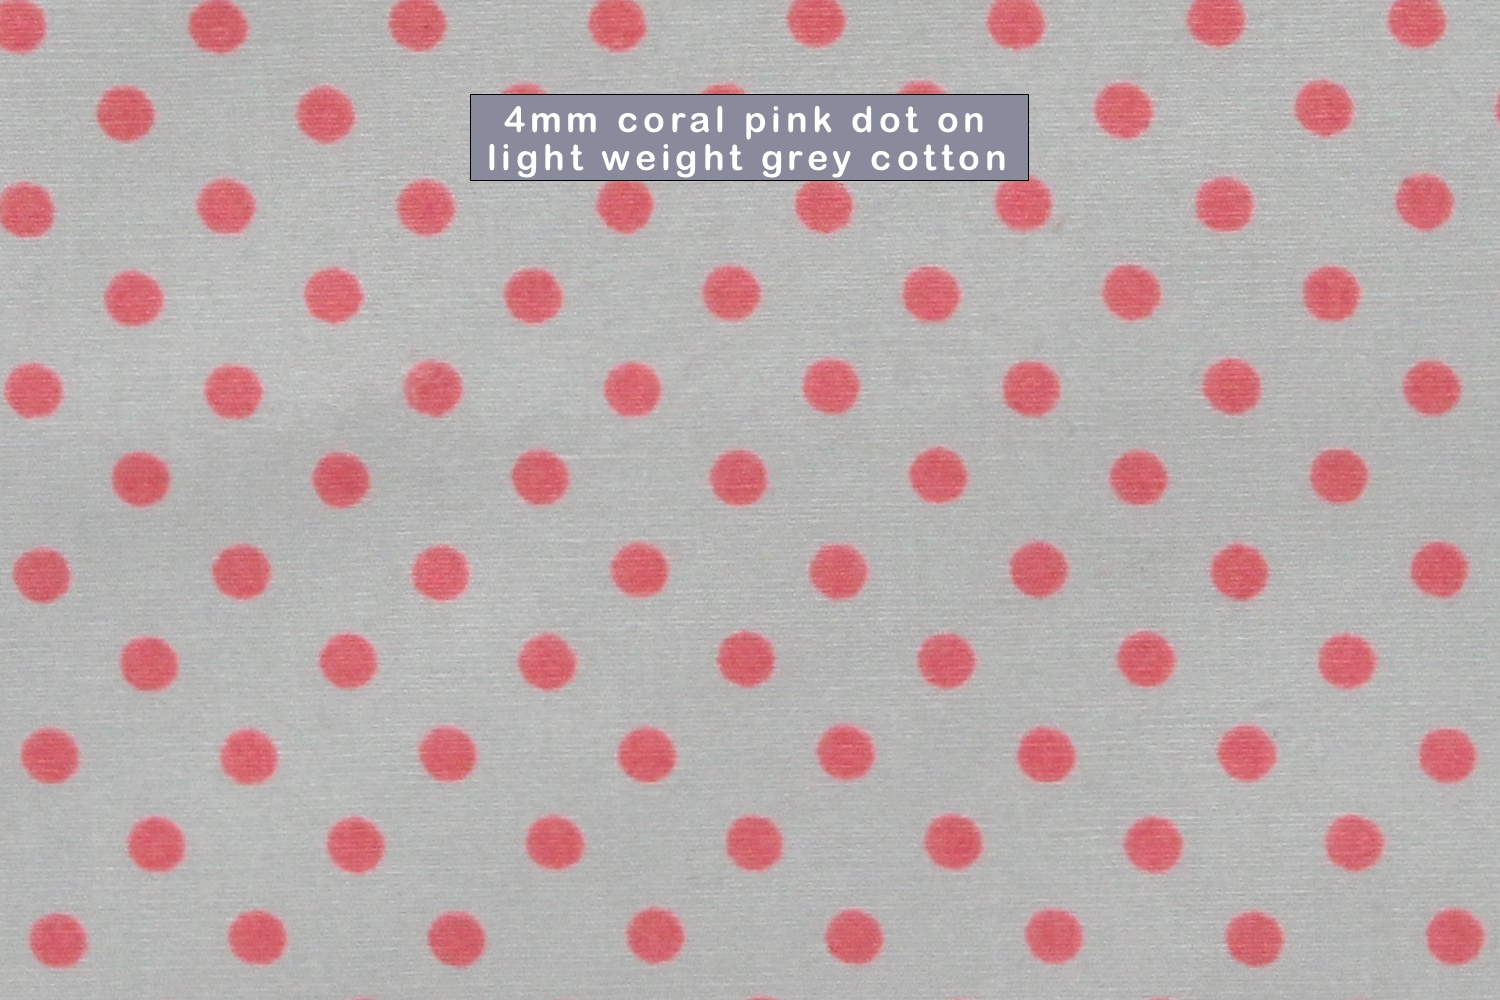 coral pink dot on grey.jpg